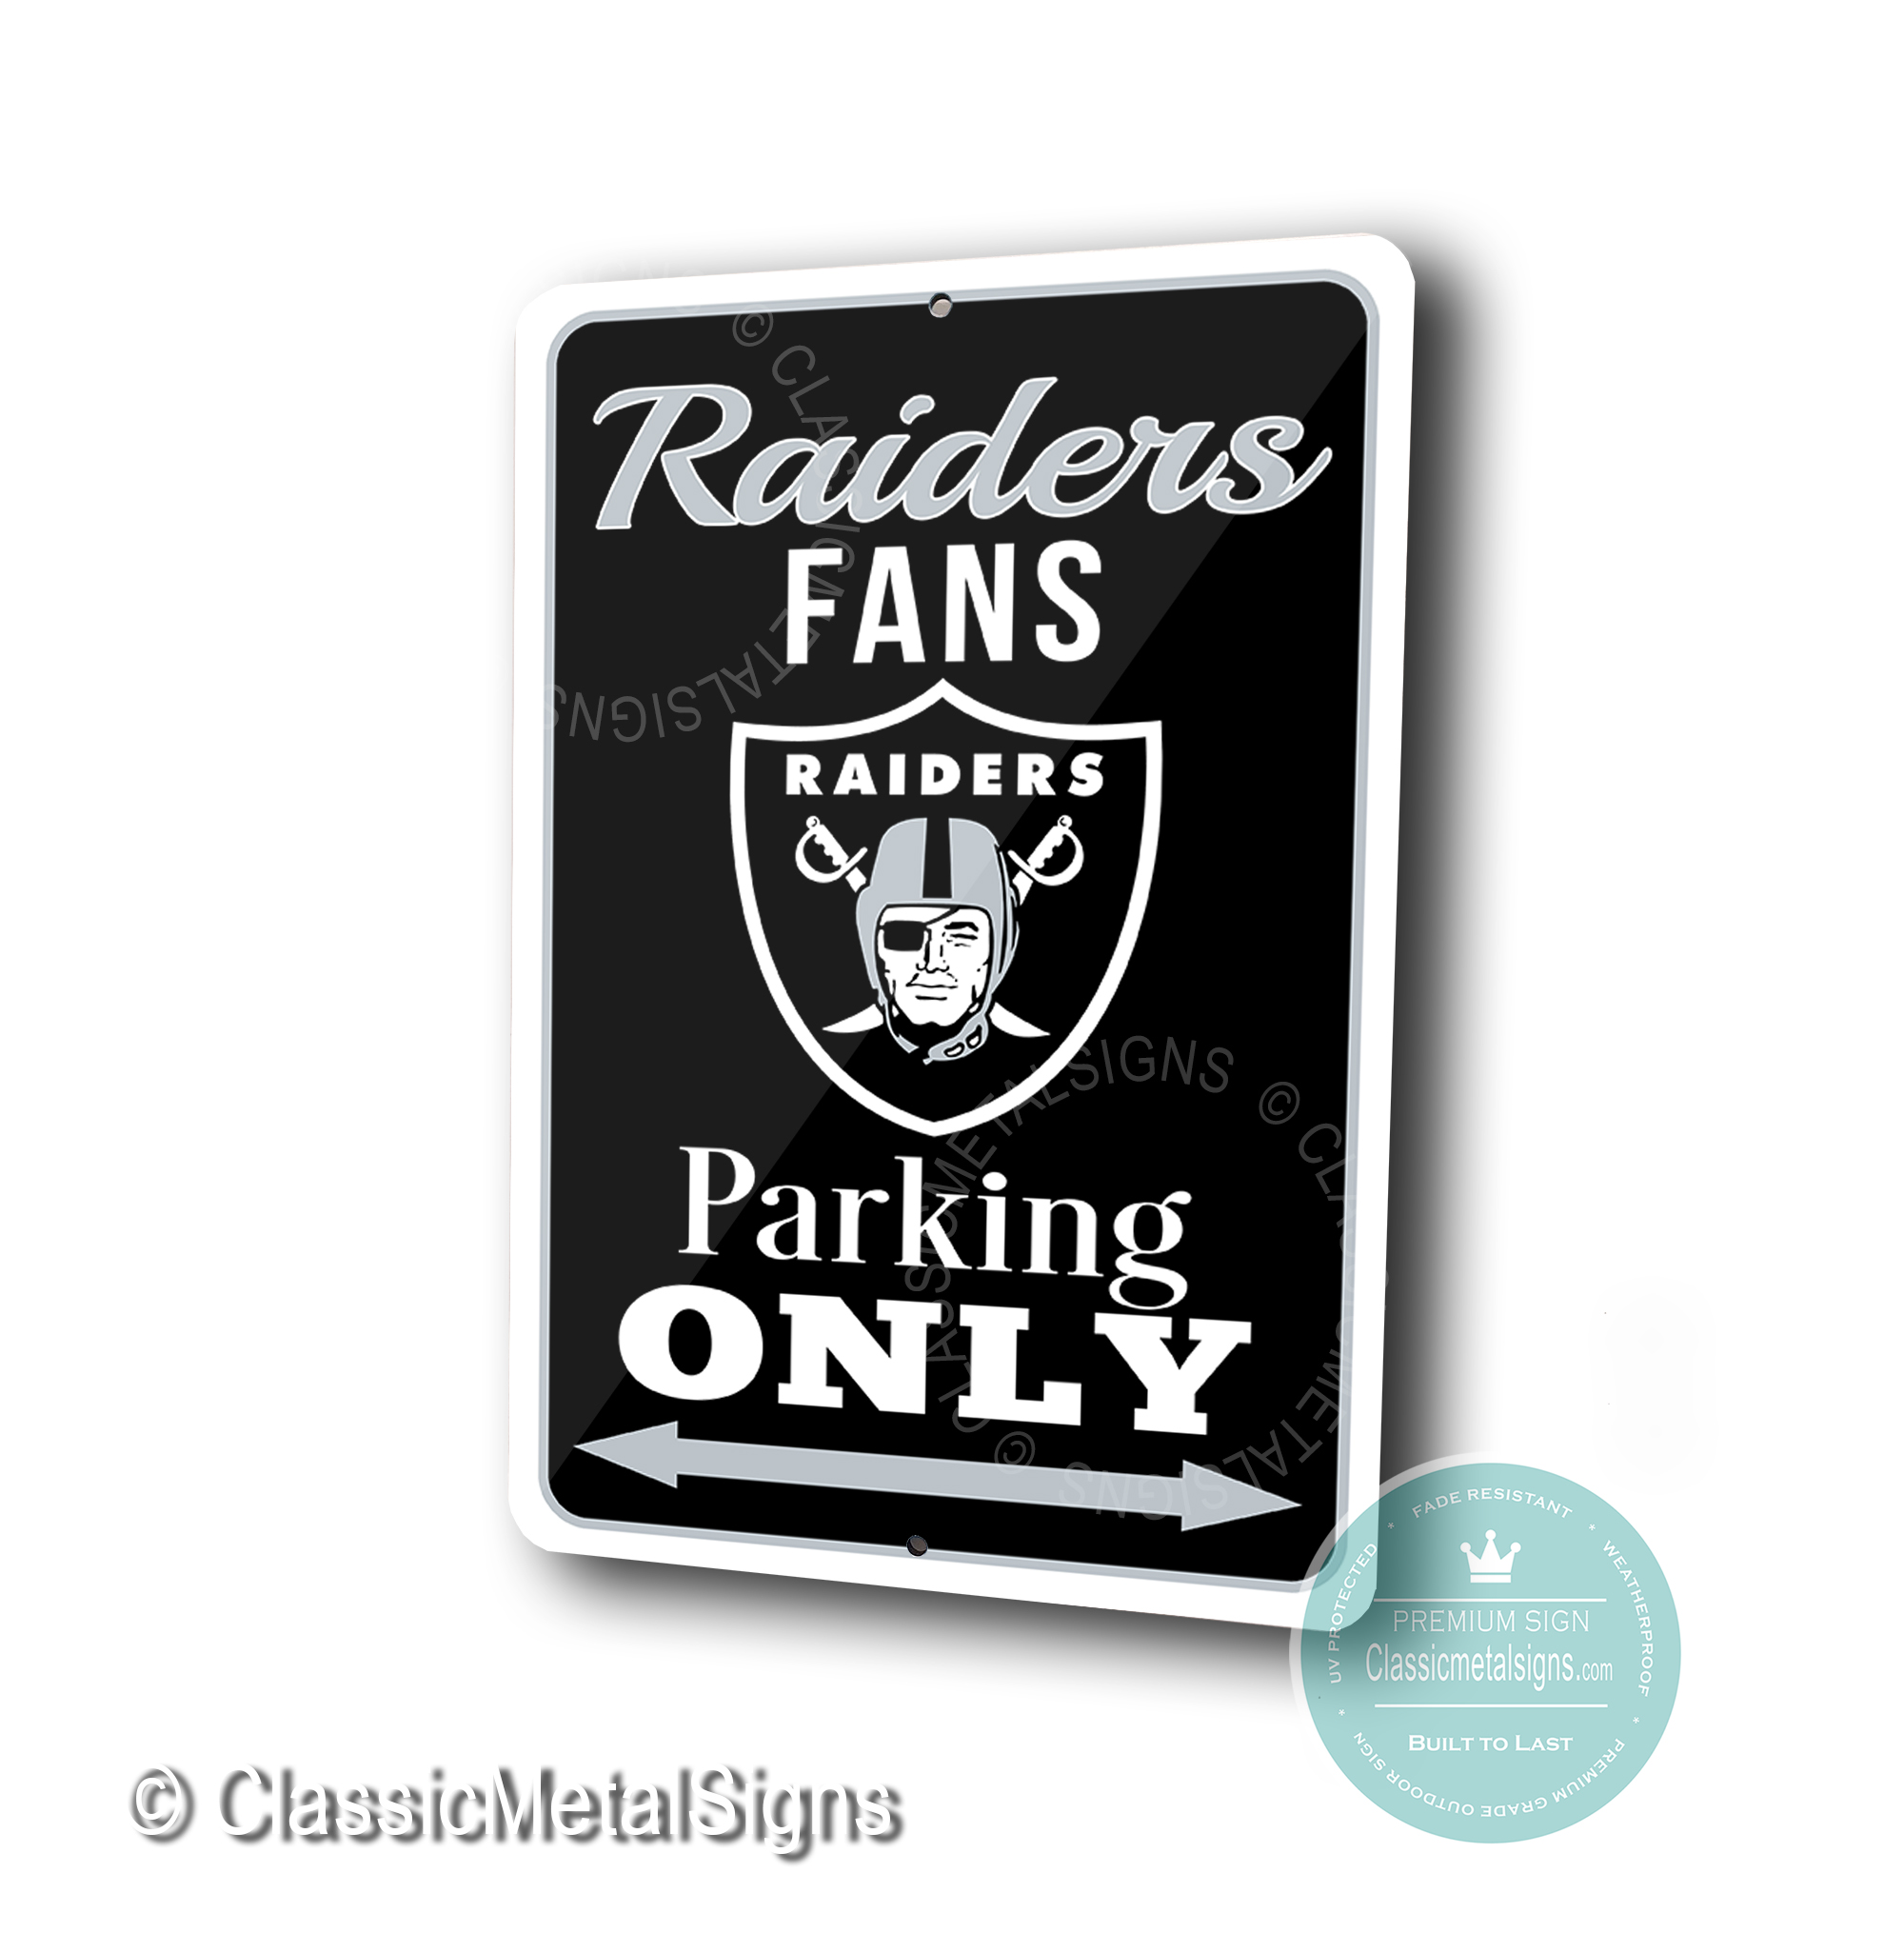 Las Vegas Raiders Parking Only signs